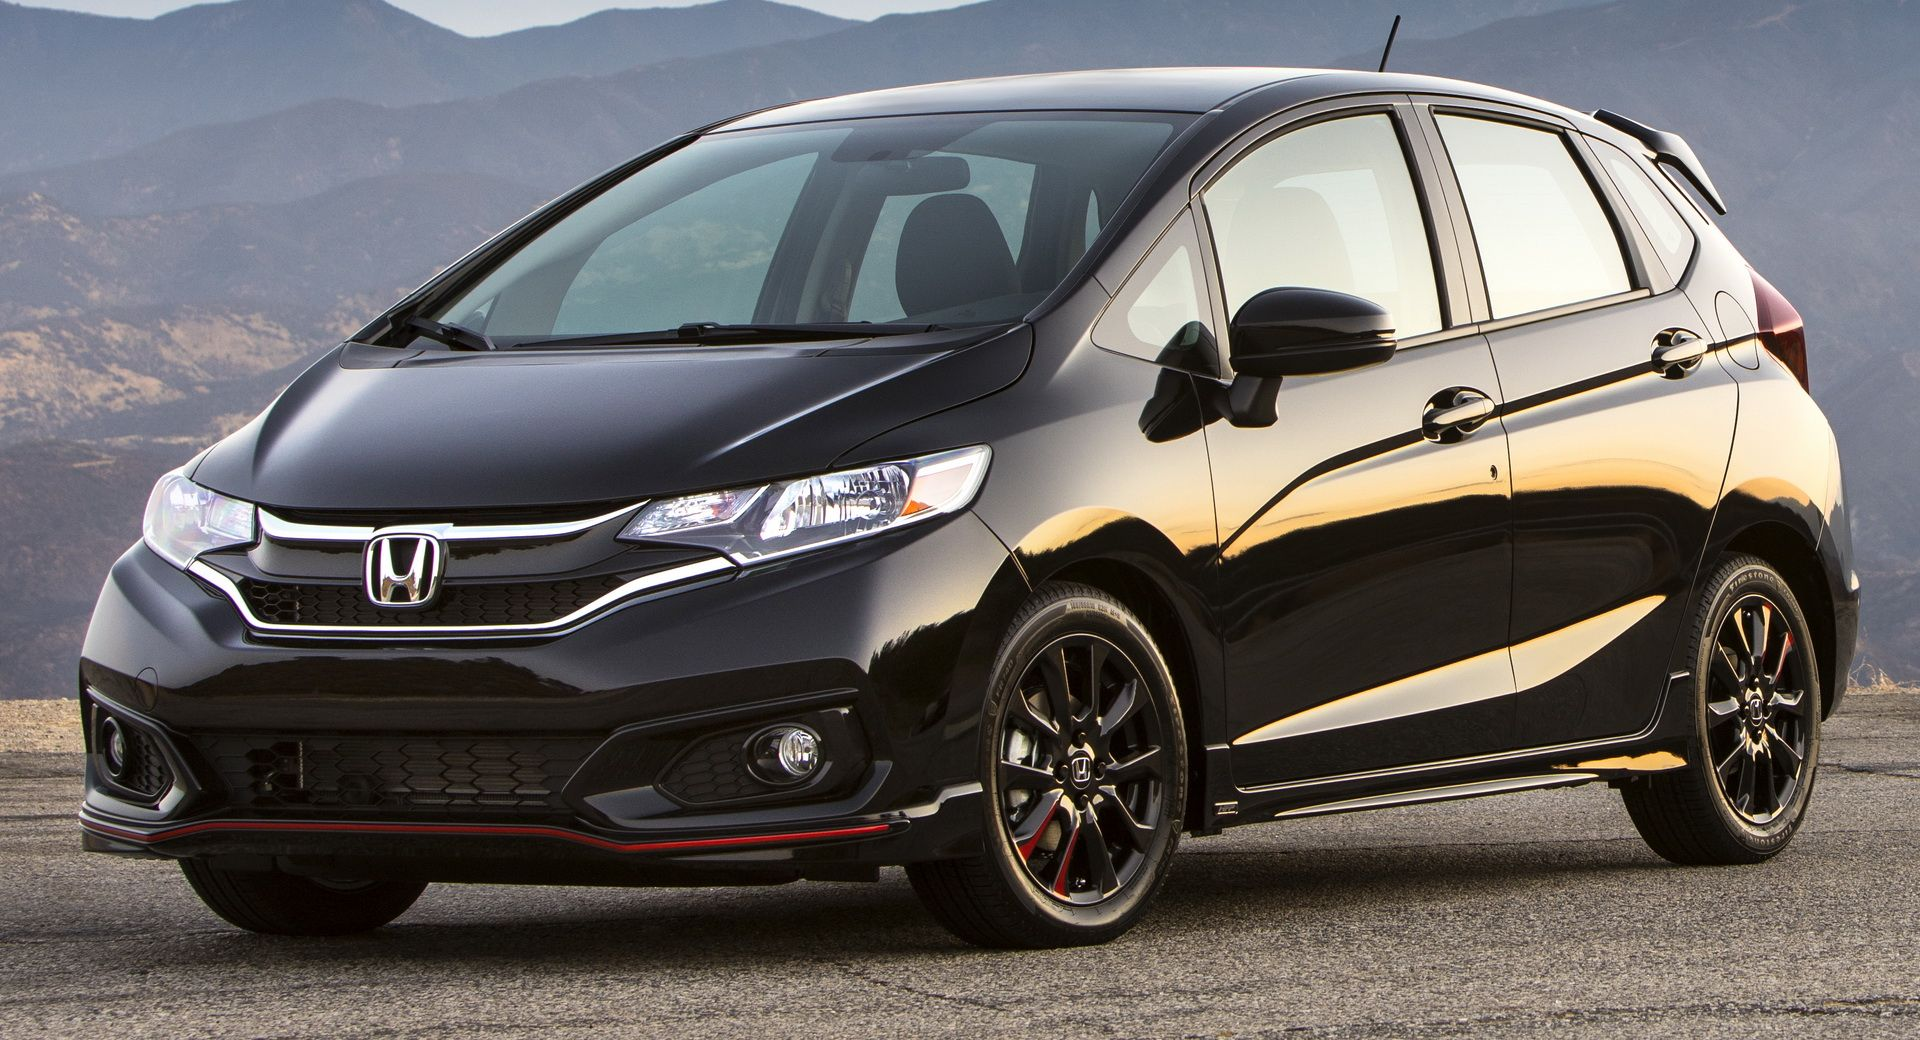 2020 Honda Fit Arrives In Dealerships With Simplified Range Same 17 120 Starting Price With Images Honda Fit Honda Dealership